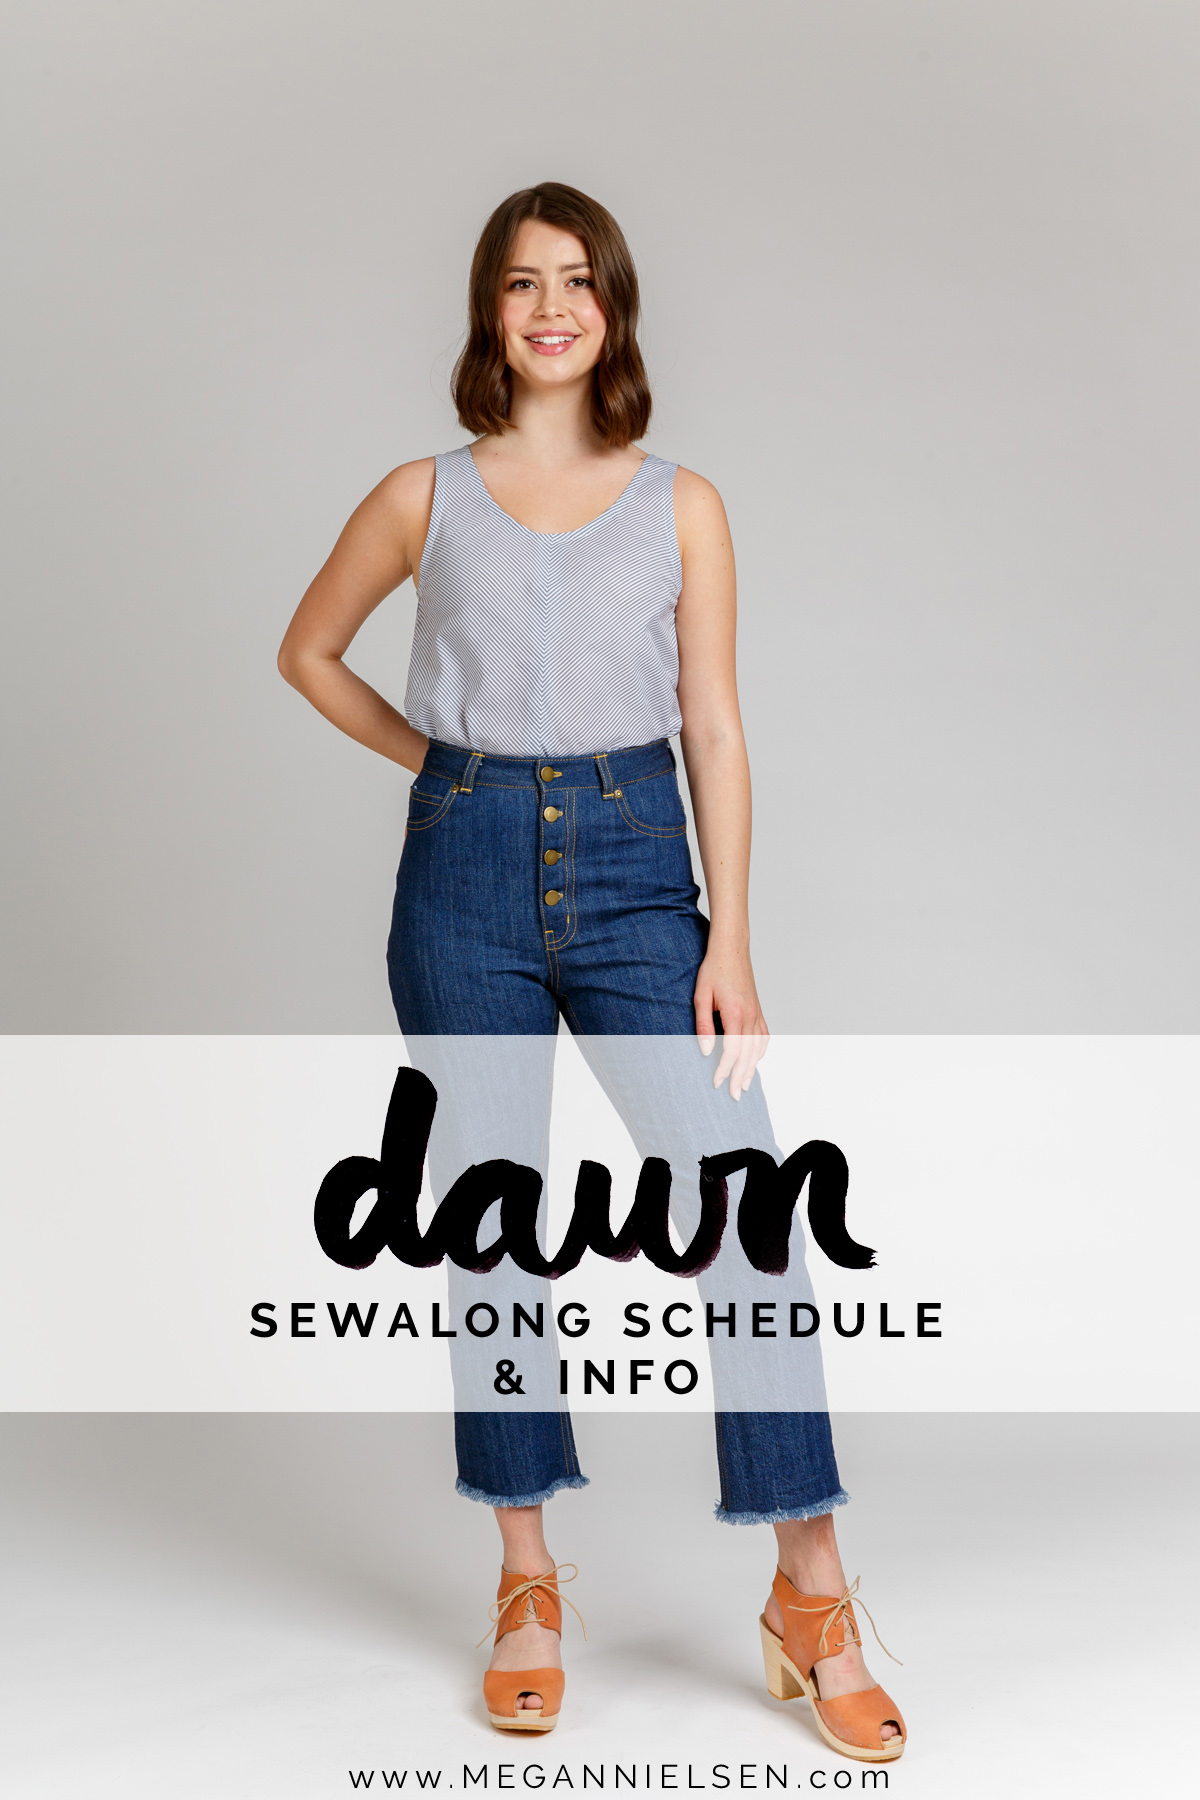 Sewalong schedule and info for the Dawn jeans by Megan Nielsen Patterns